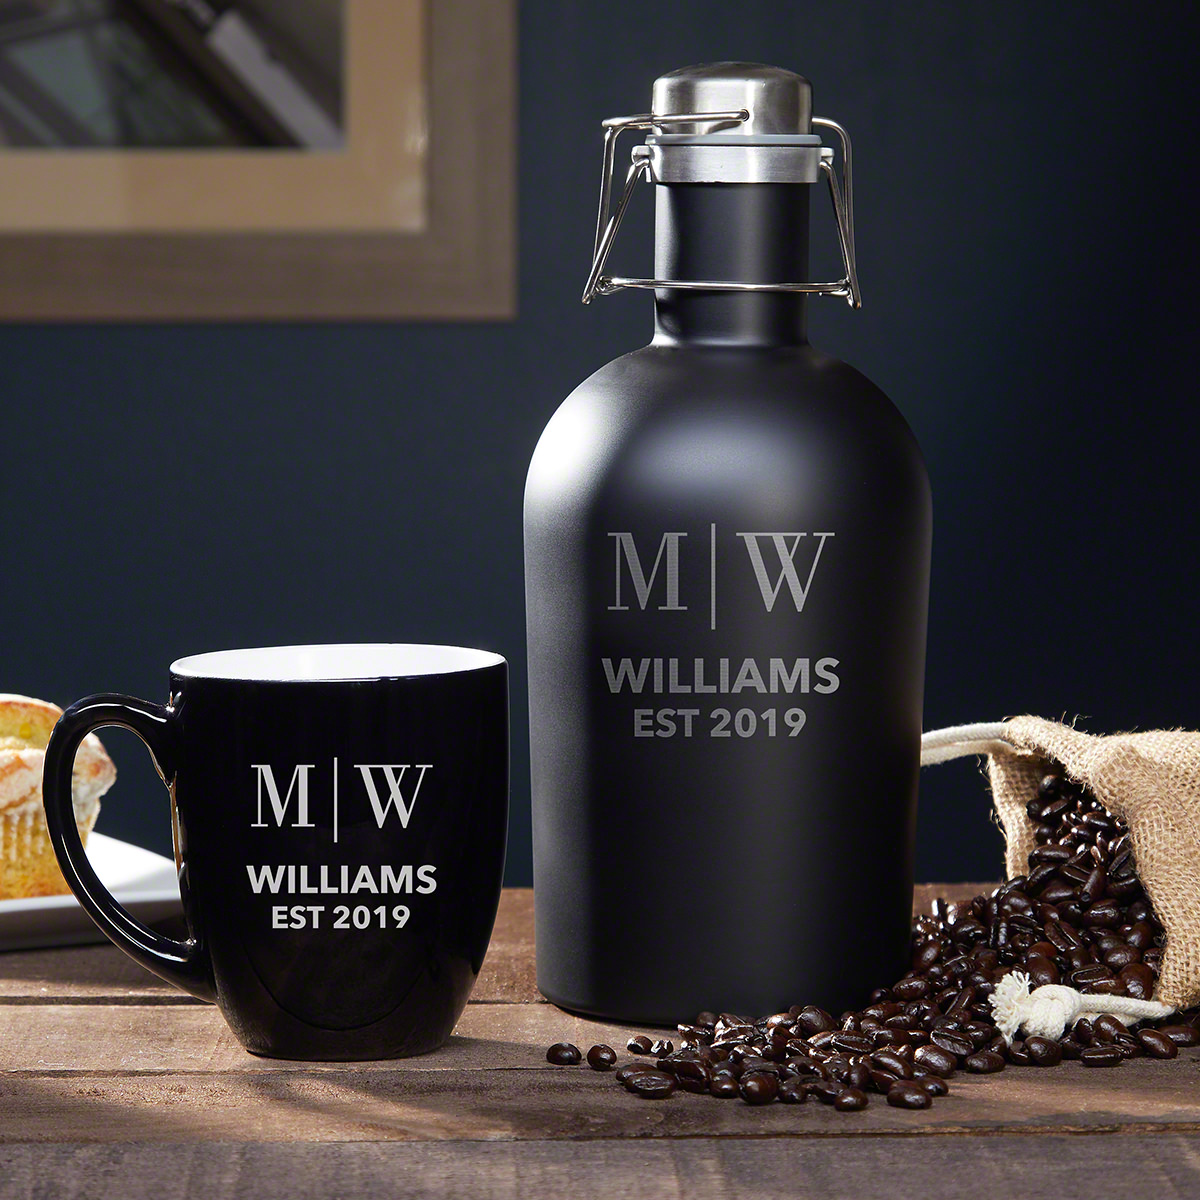 Few things are better than a hot cup of coffee in the morning. Now you can carry that feeling with you all day with our custom coffee growler and mug set. Capable of holding 64 ounces and keeping your coffee warm, enjoy your favorite brew on your commute, #mug